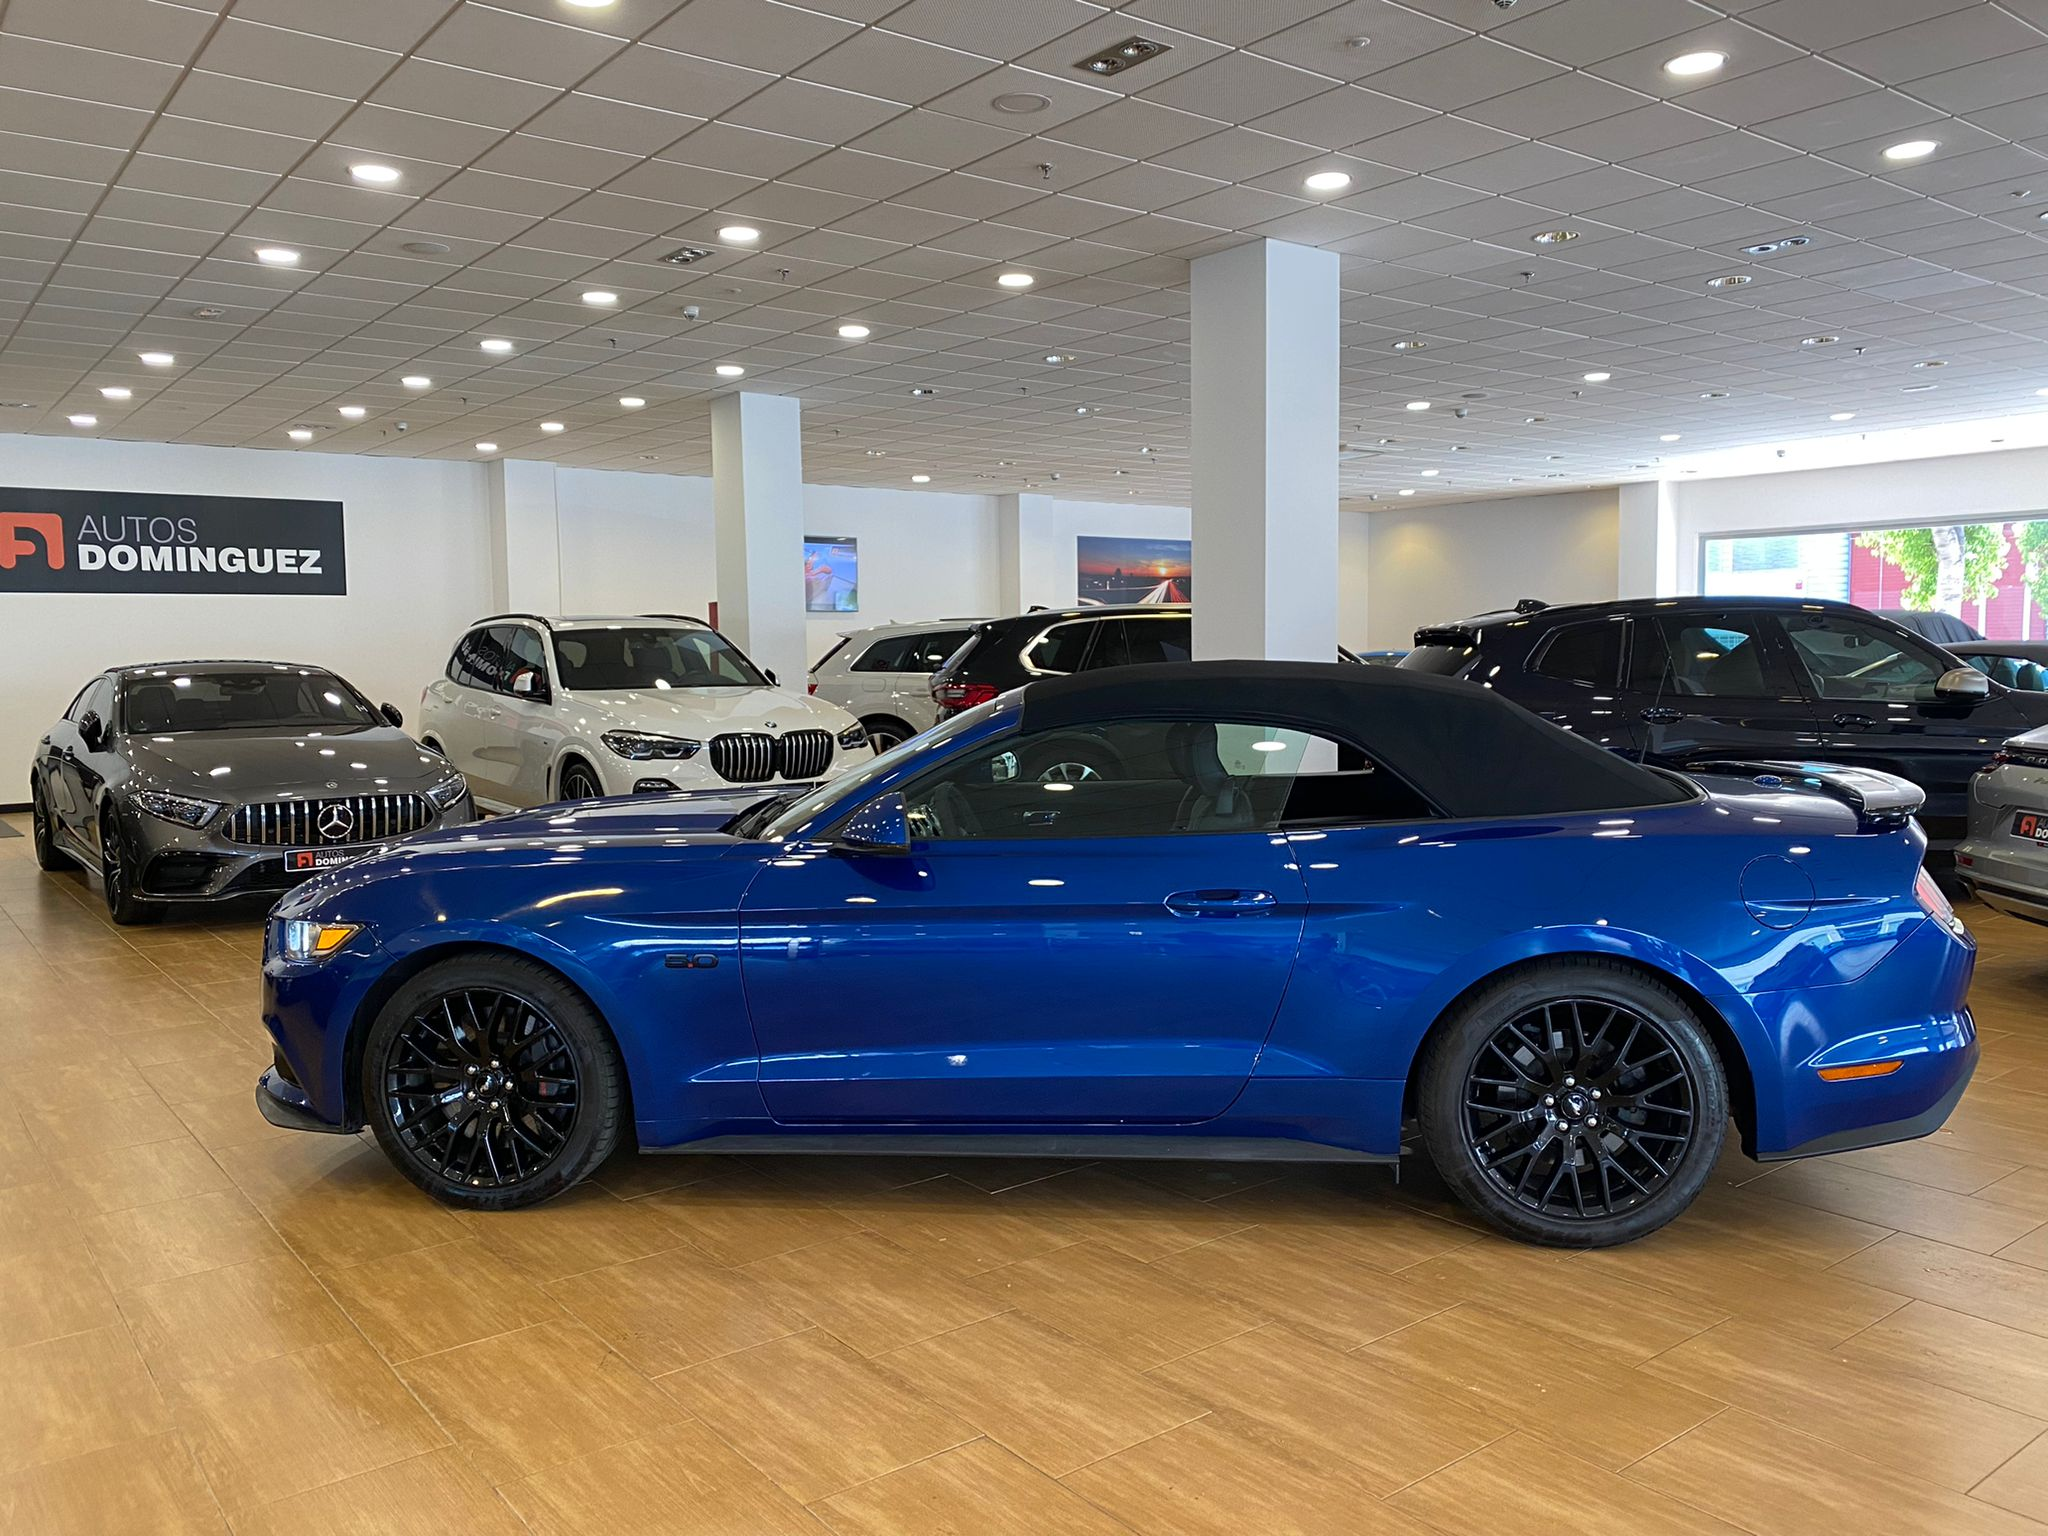 FORD Mustang 5.0 TiVCT V8 307kW Mustang GT Conv. 2p. 4